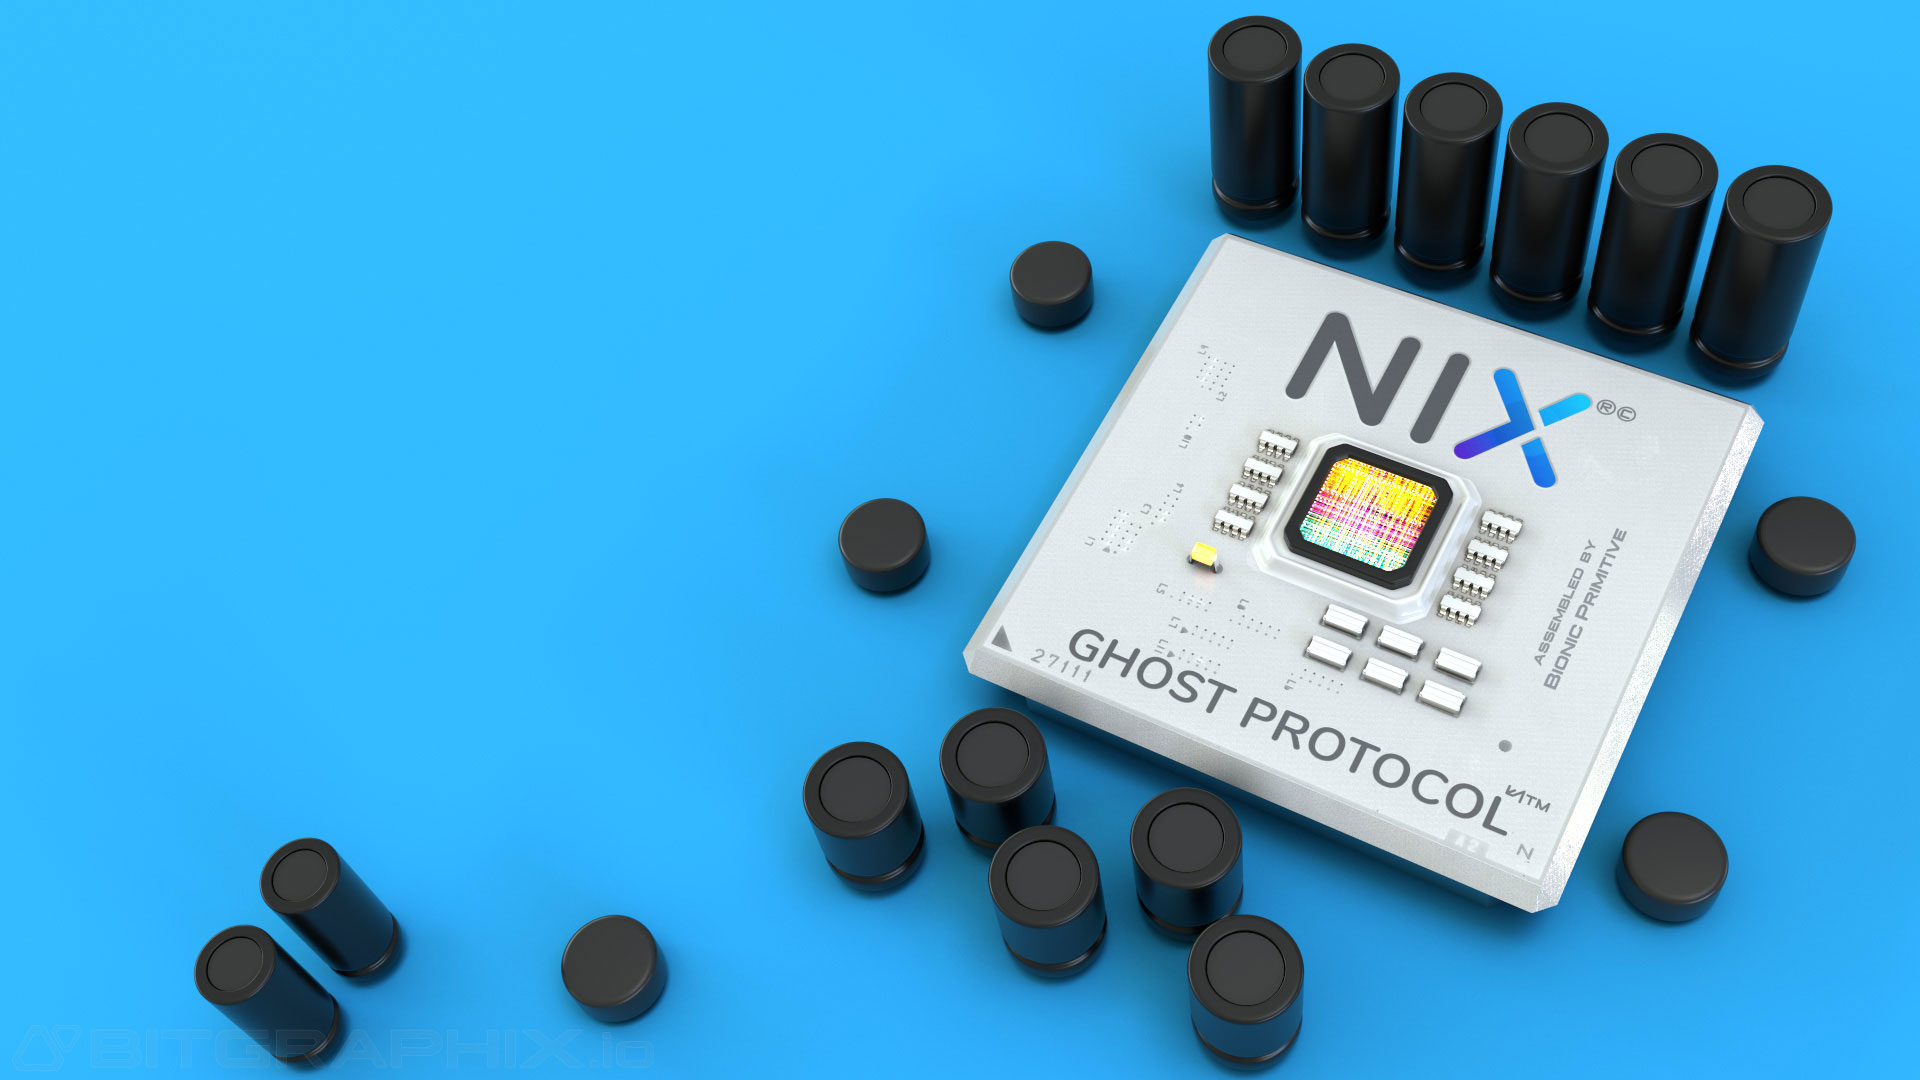 NIX-Platform-Ghost-Protocol-promotional-animation-cpu-detail-blue-background-3d-vfx-redshift-render